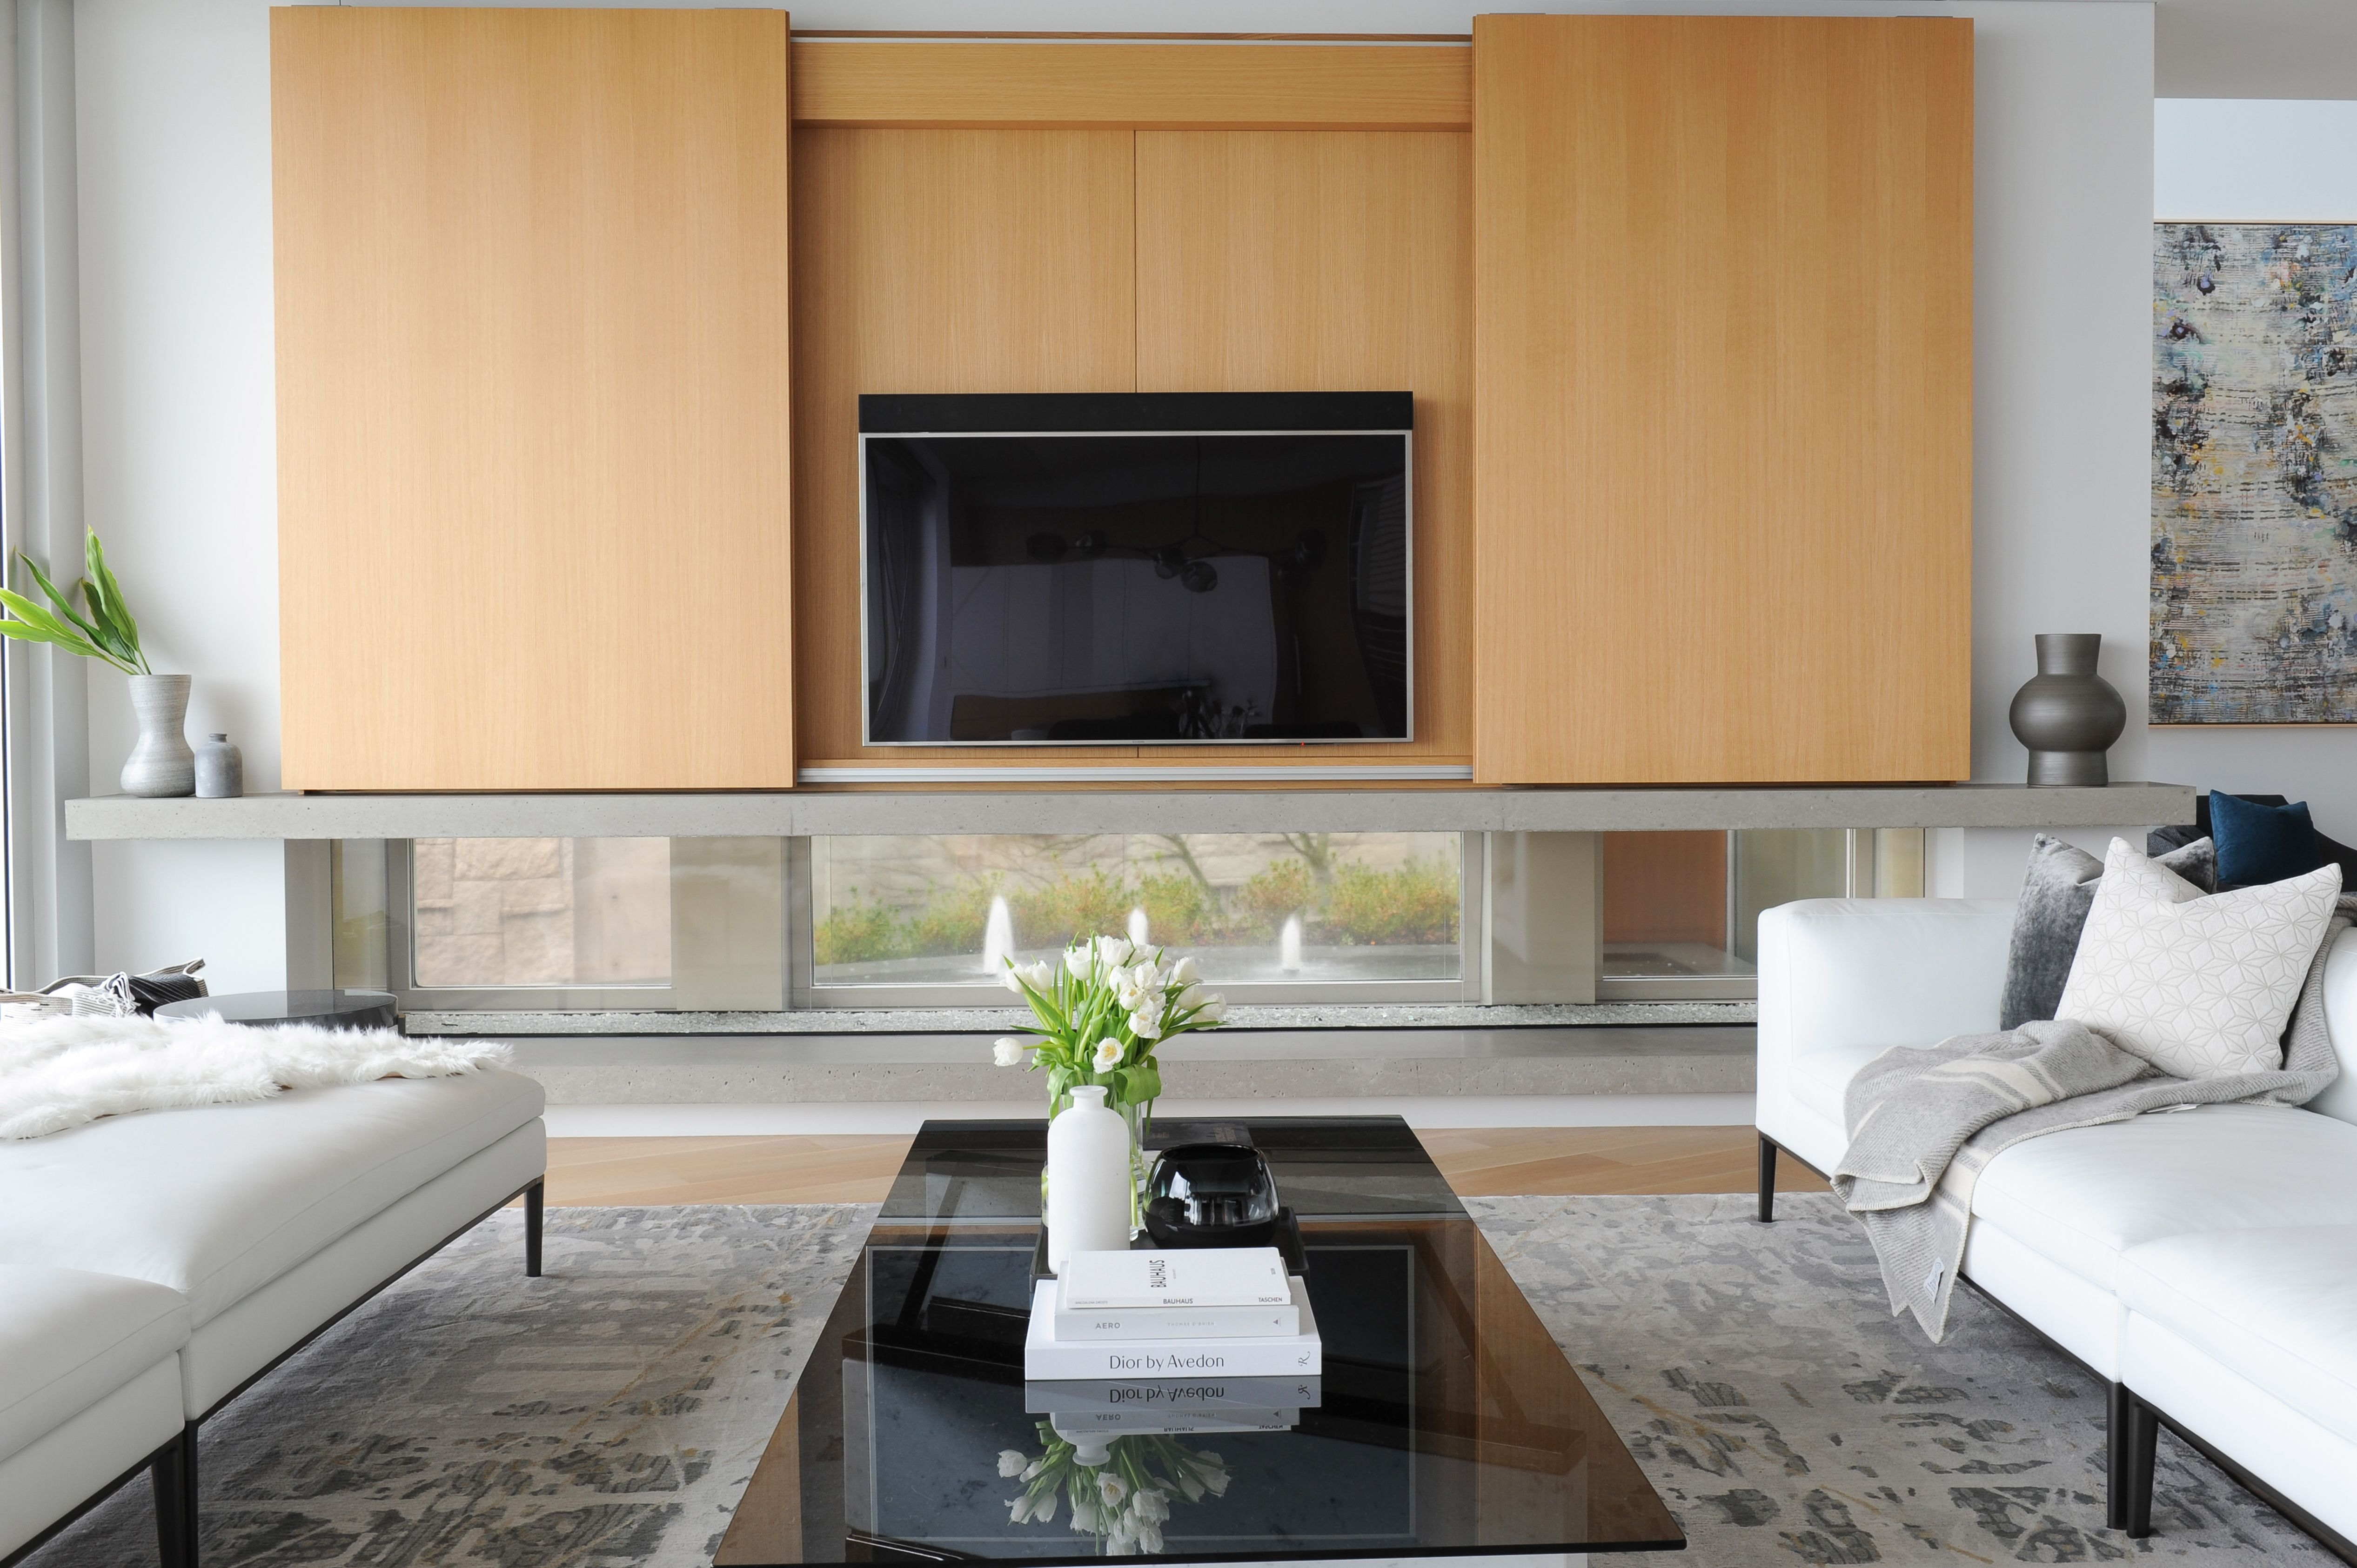 FDNA Architecture added wood paneling with a hidden function of hiding the TV. #FormfollowsFunction